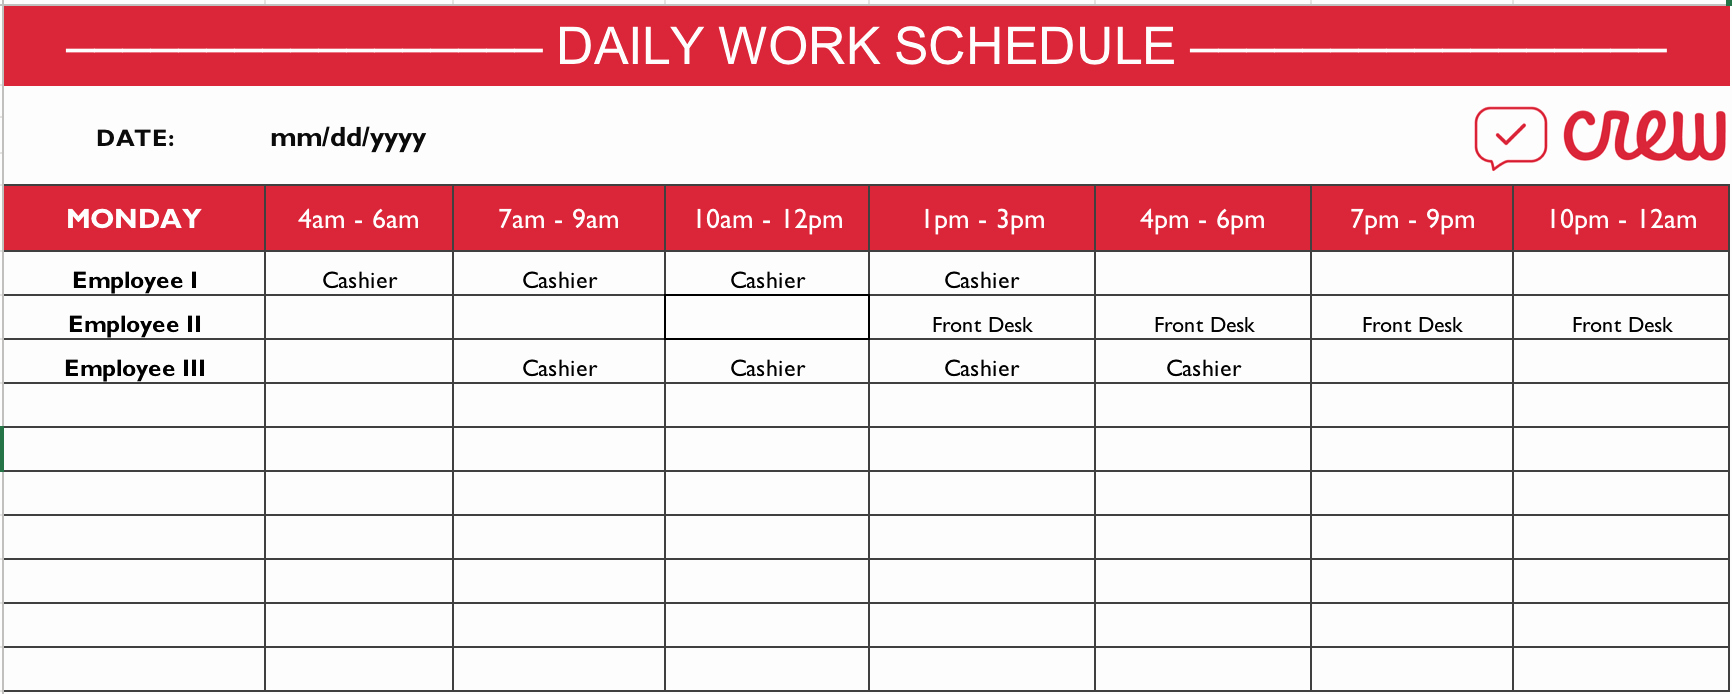 Free Weekly Work Schedule Template Luxury Free Daily Work Schedule Template Crew